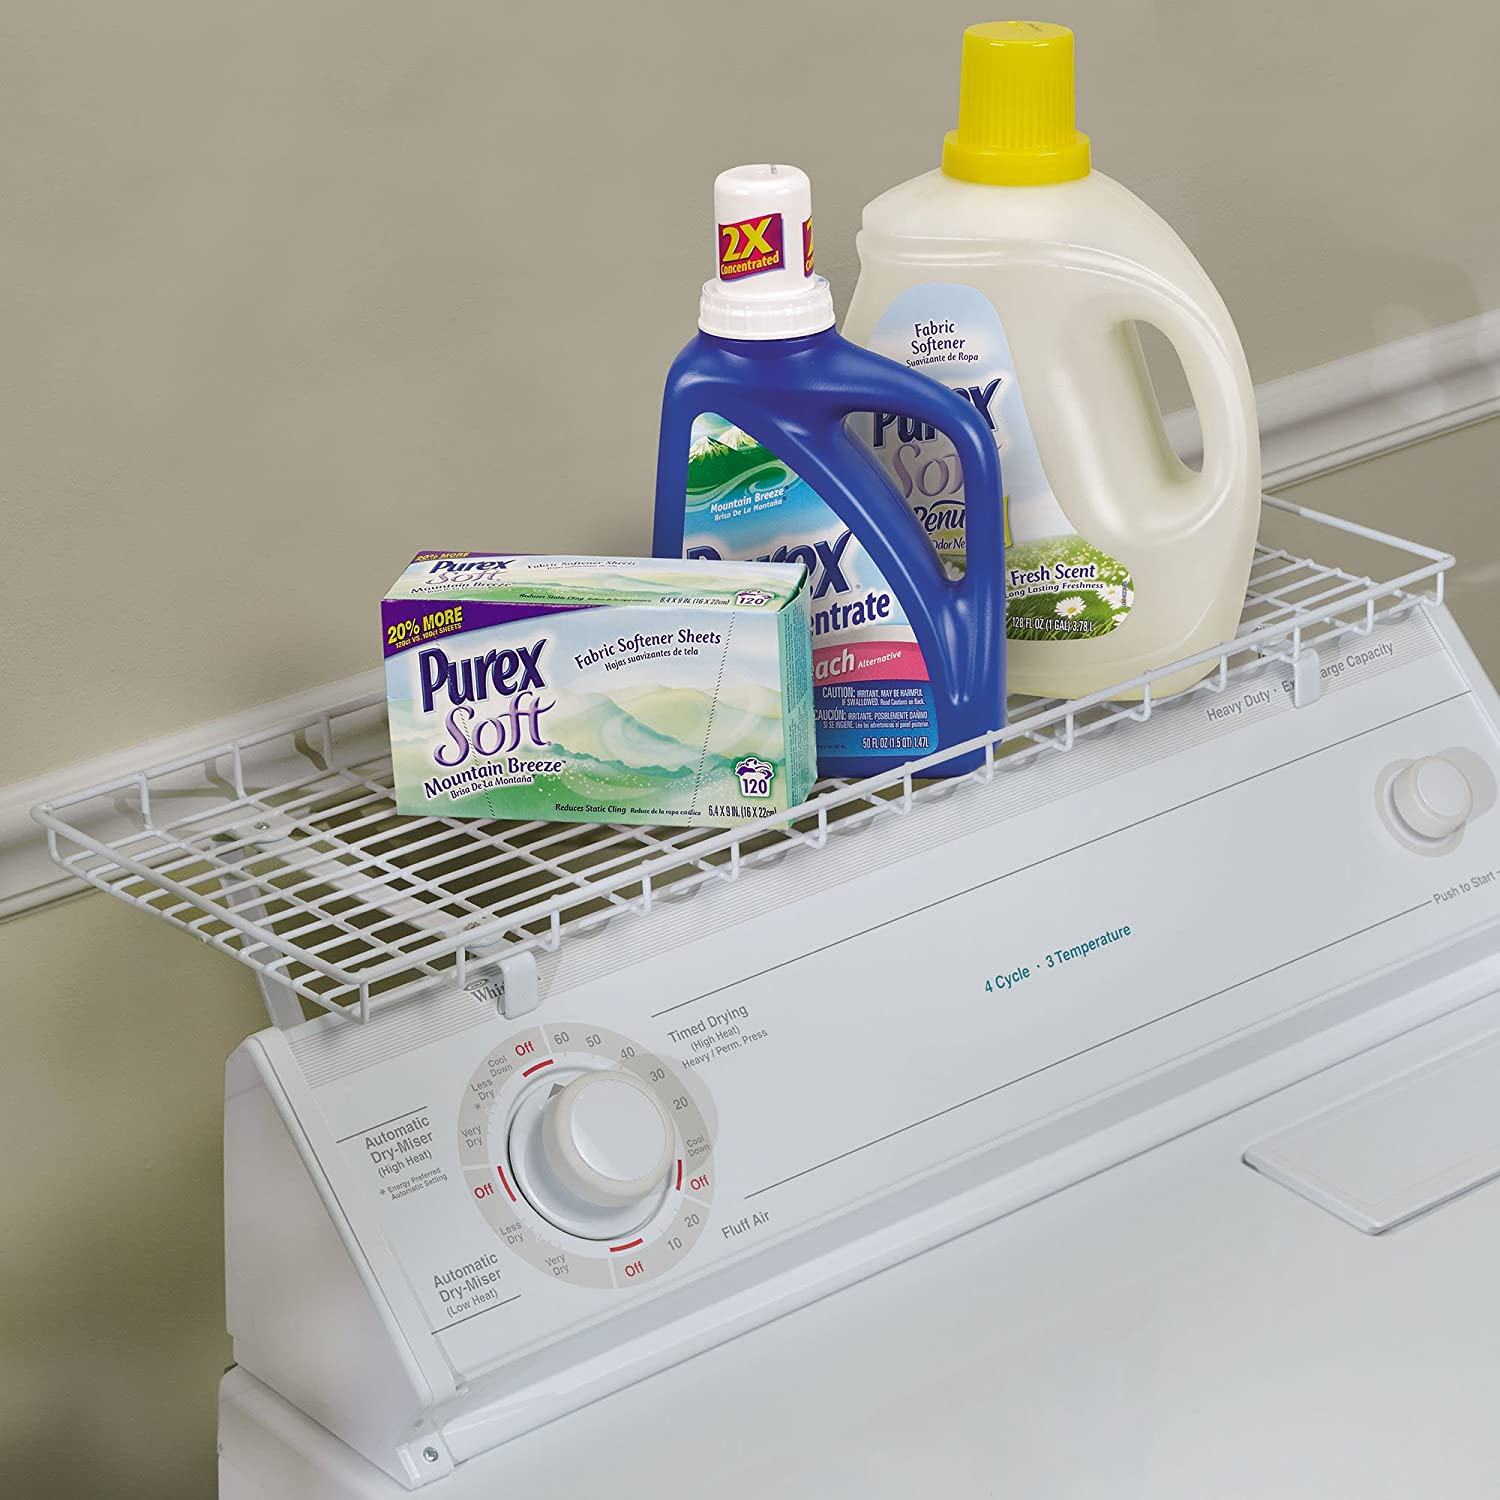 Amazon.com: Household Essentials 05100 Rear Display Over The Washer Storage  Shelf | Organize And Store Laundry Room Supplies | White: Home U0026 Kitchen